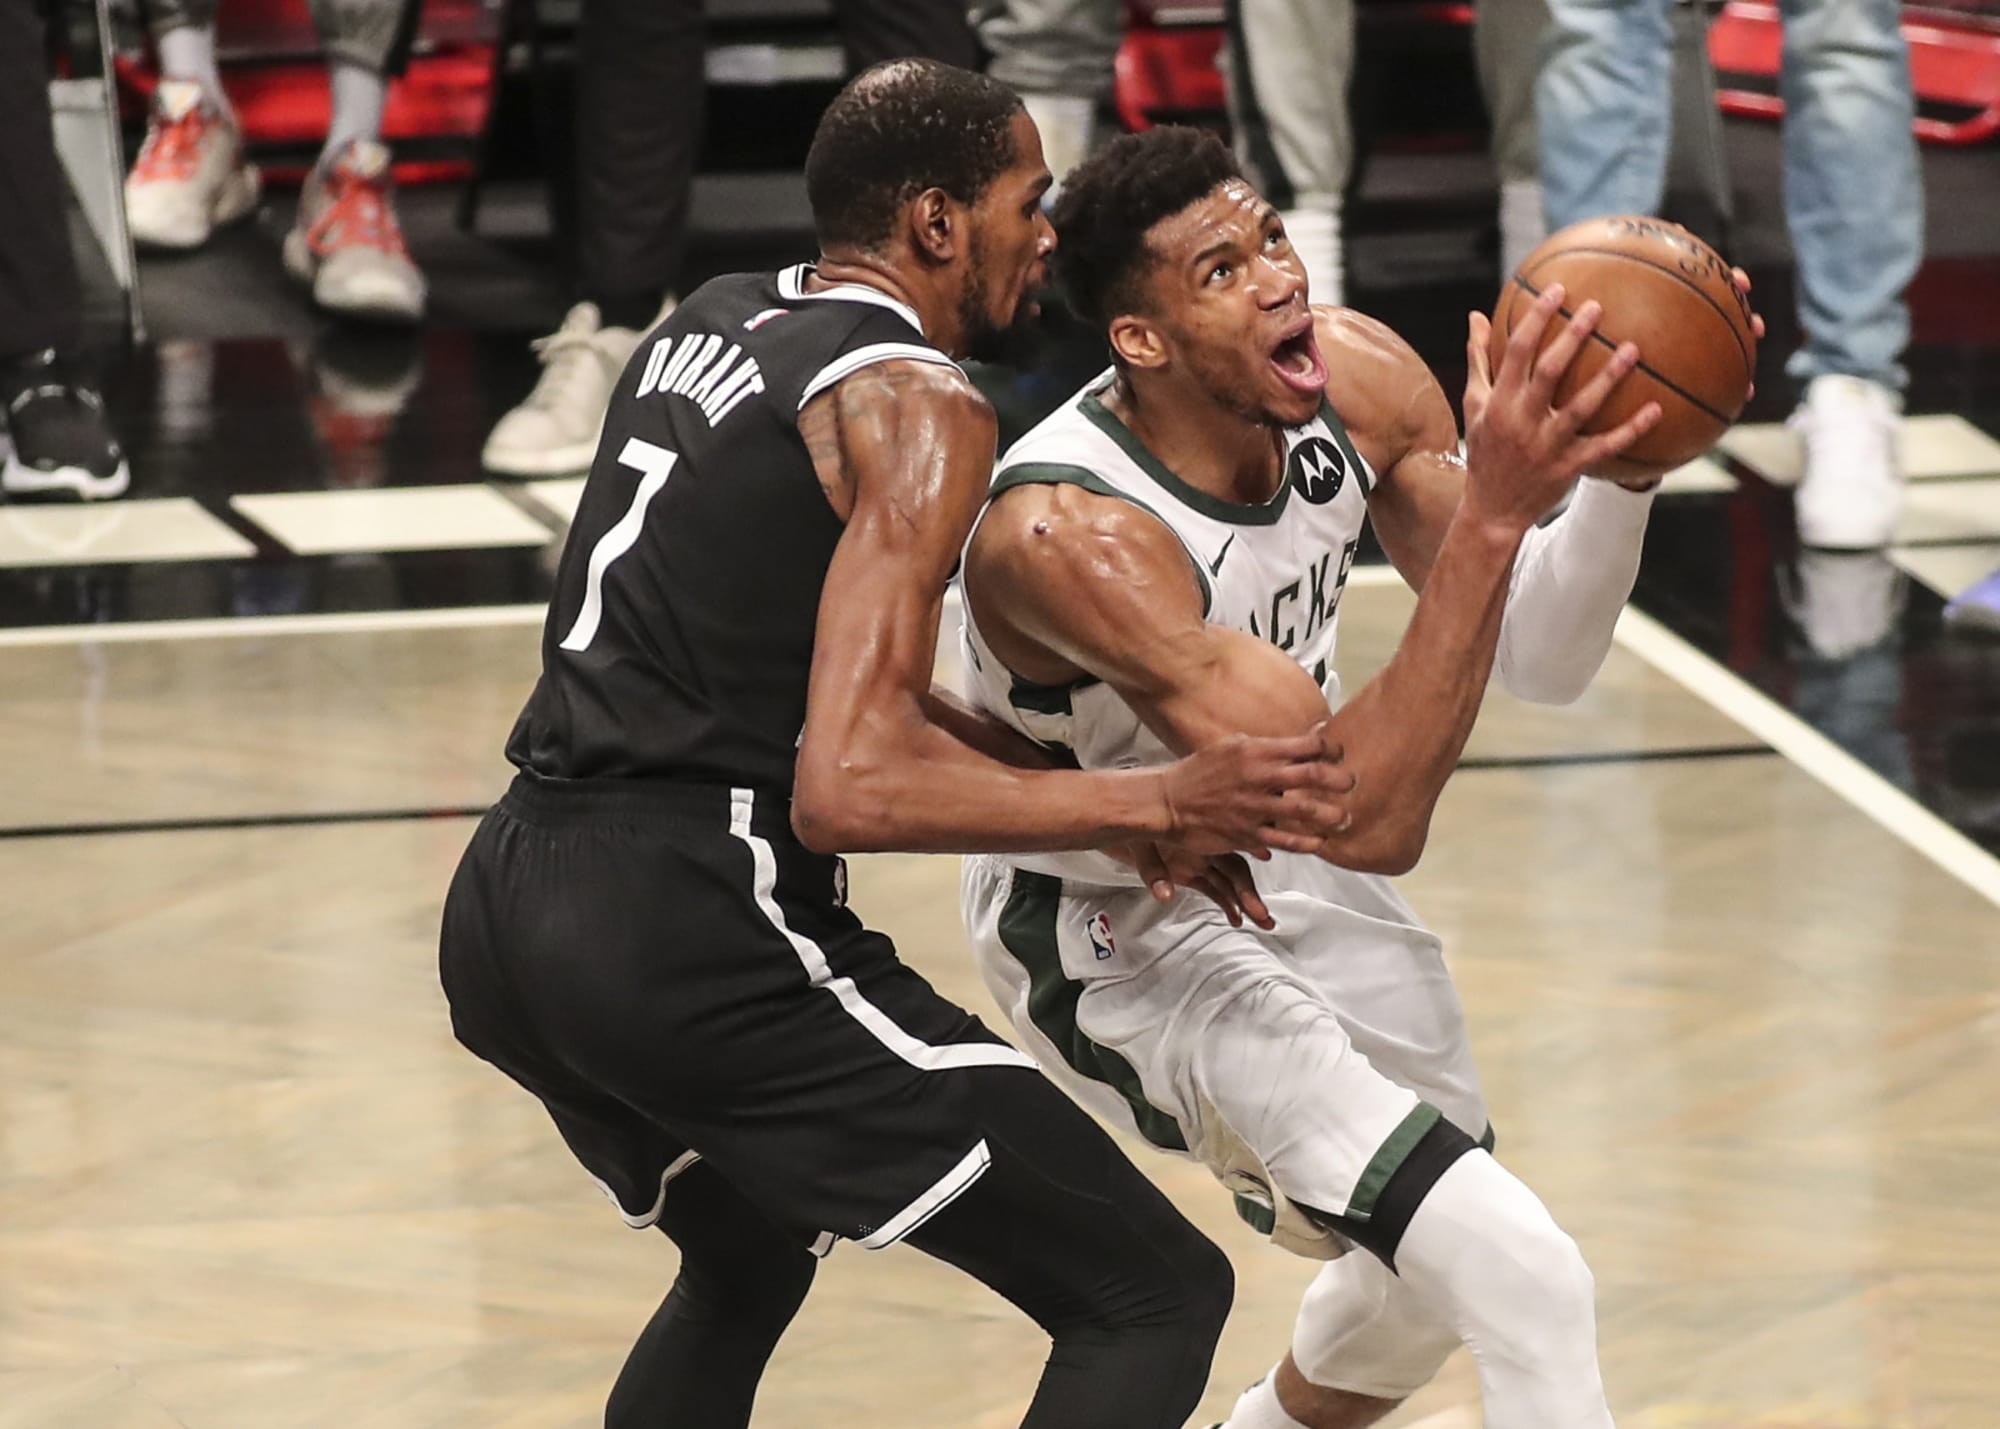 Giannis Antetokounmpo's Game 7 performance vs. Nets was a legacy game